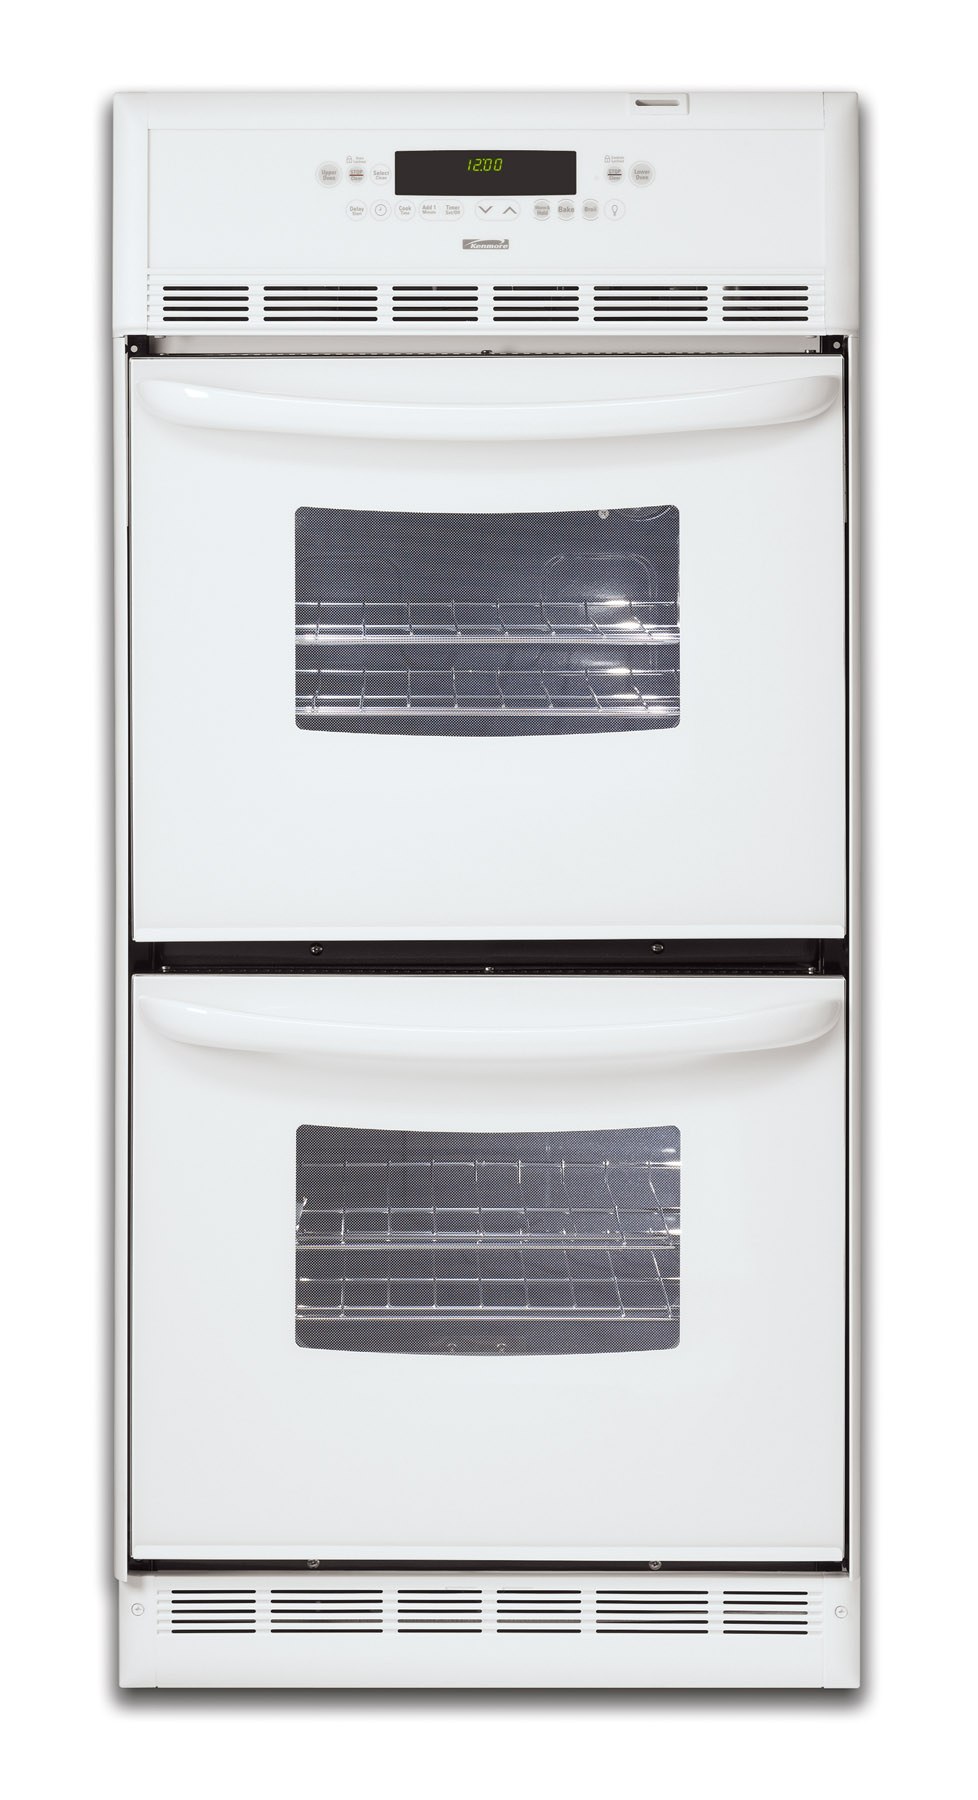 Kenmore 40612 24 Manual Clean Double Wall Oven